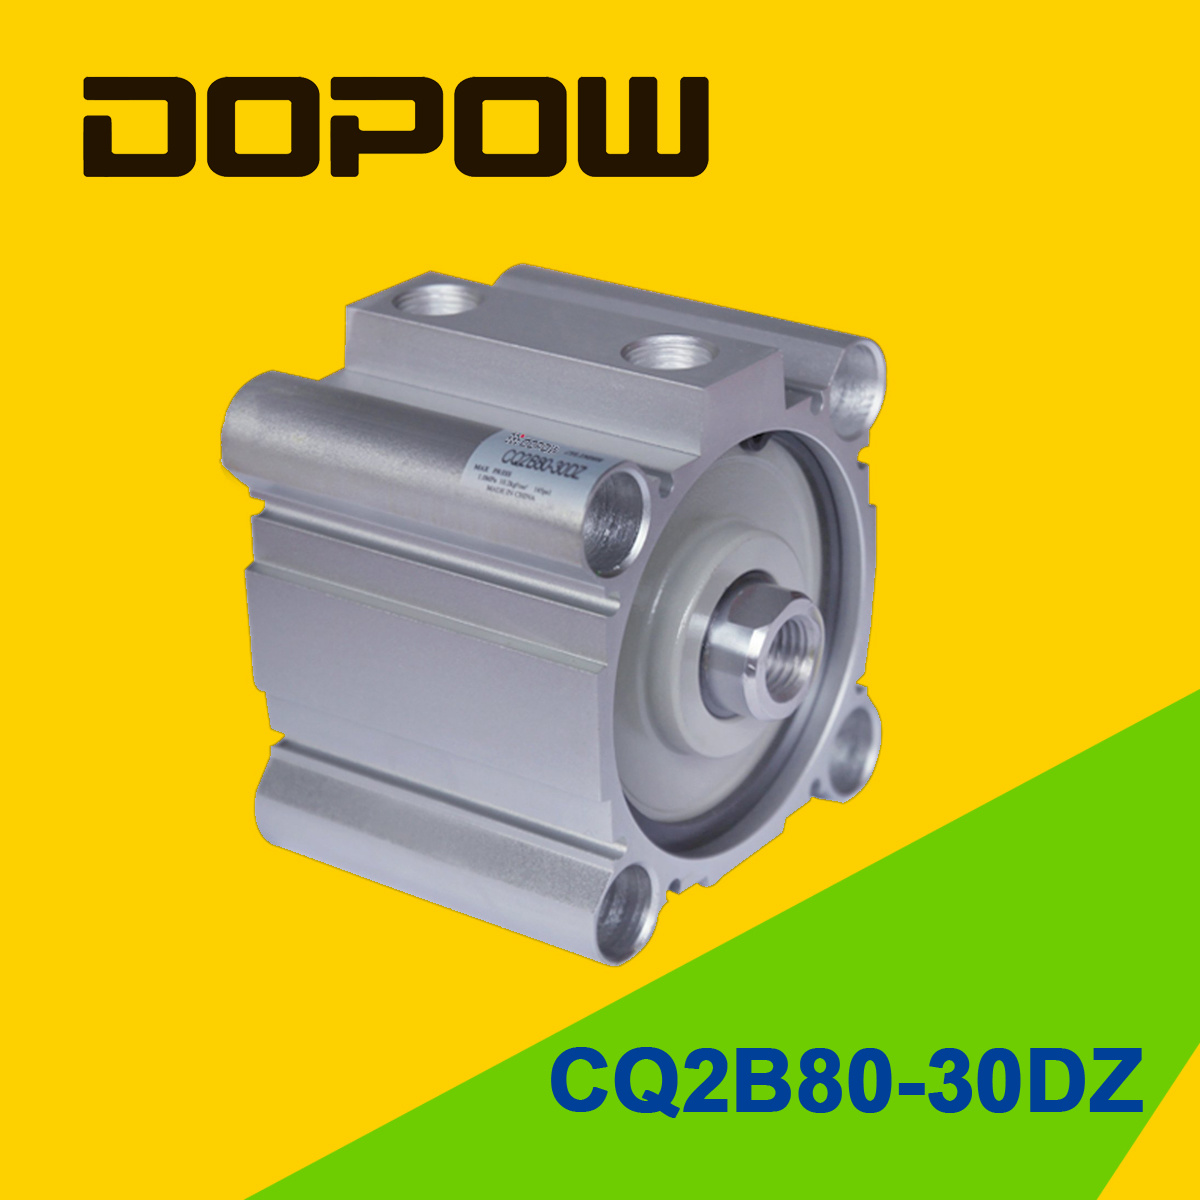 Dopow Series Cq2b80-30 Compact Cylinder Double Acting Basic Type